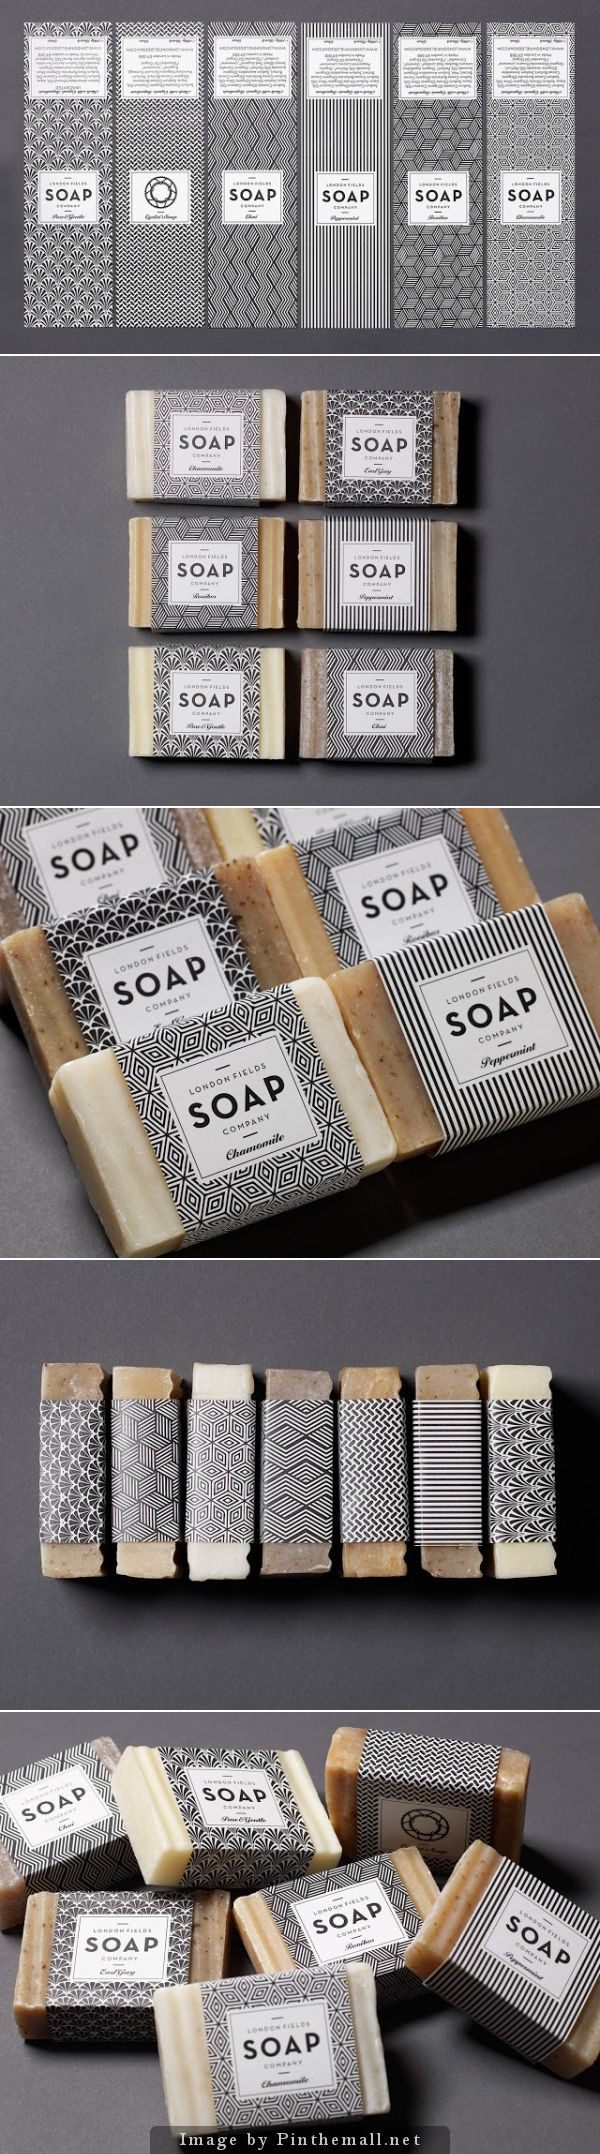 Packaging / London Fields Soap Company